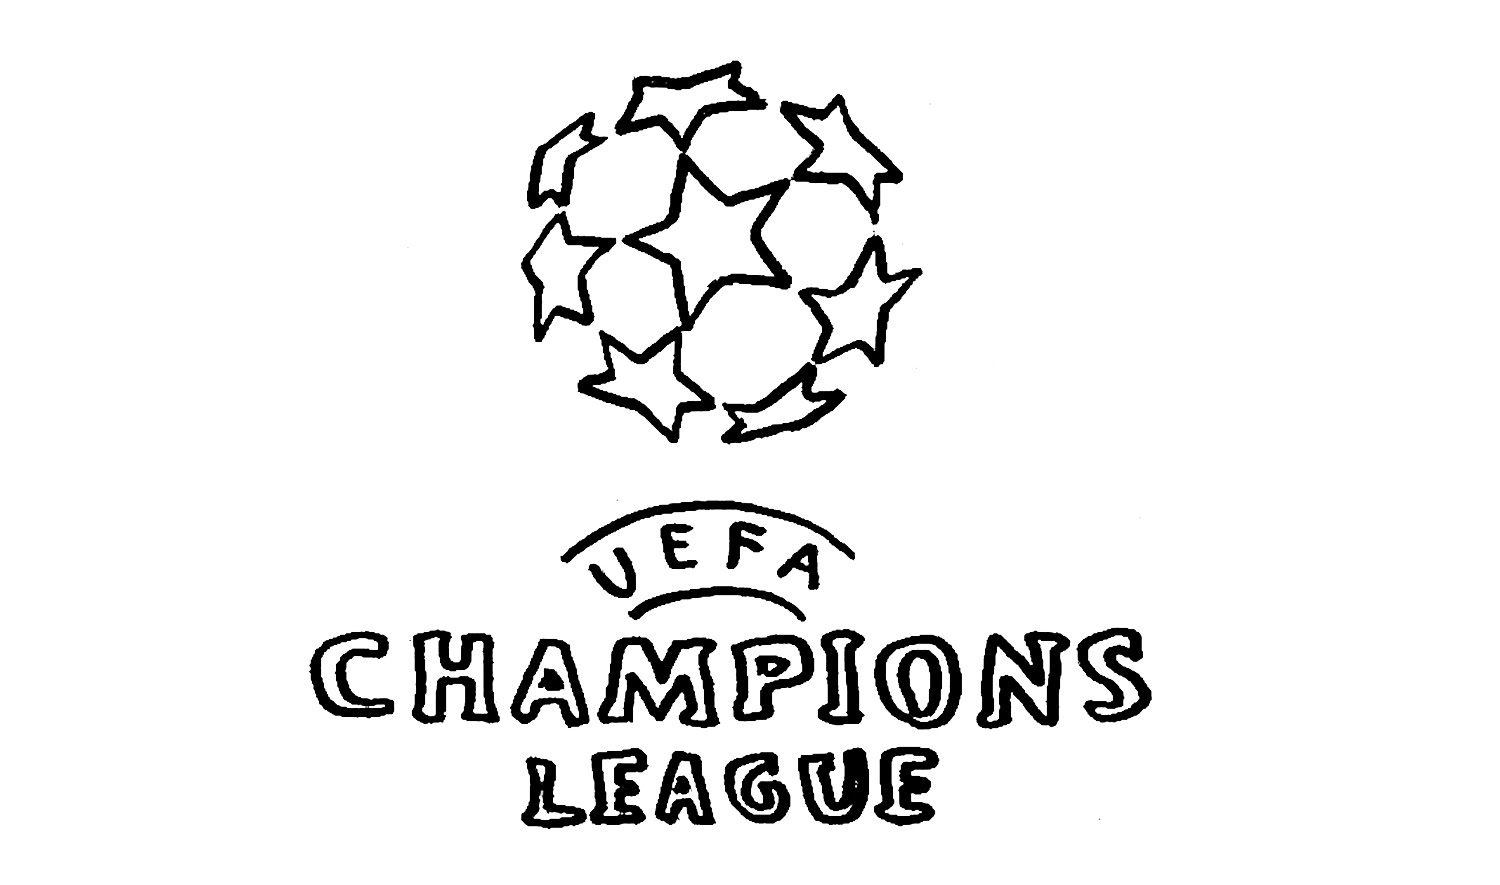 1500x885 How To Draw The Uefa Champions League Logo